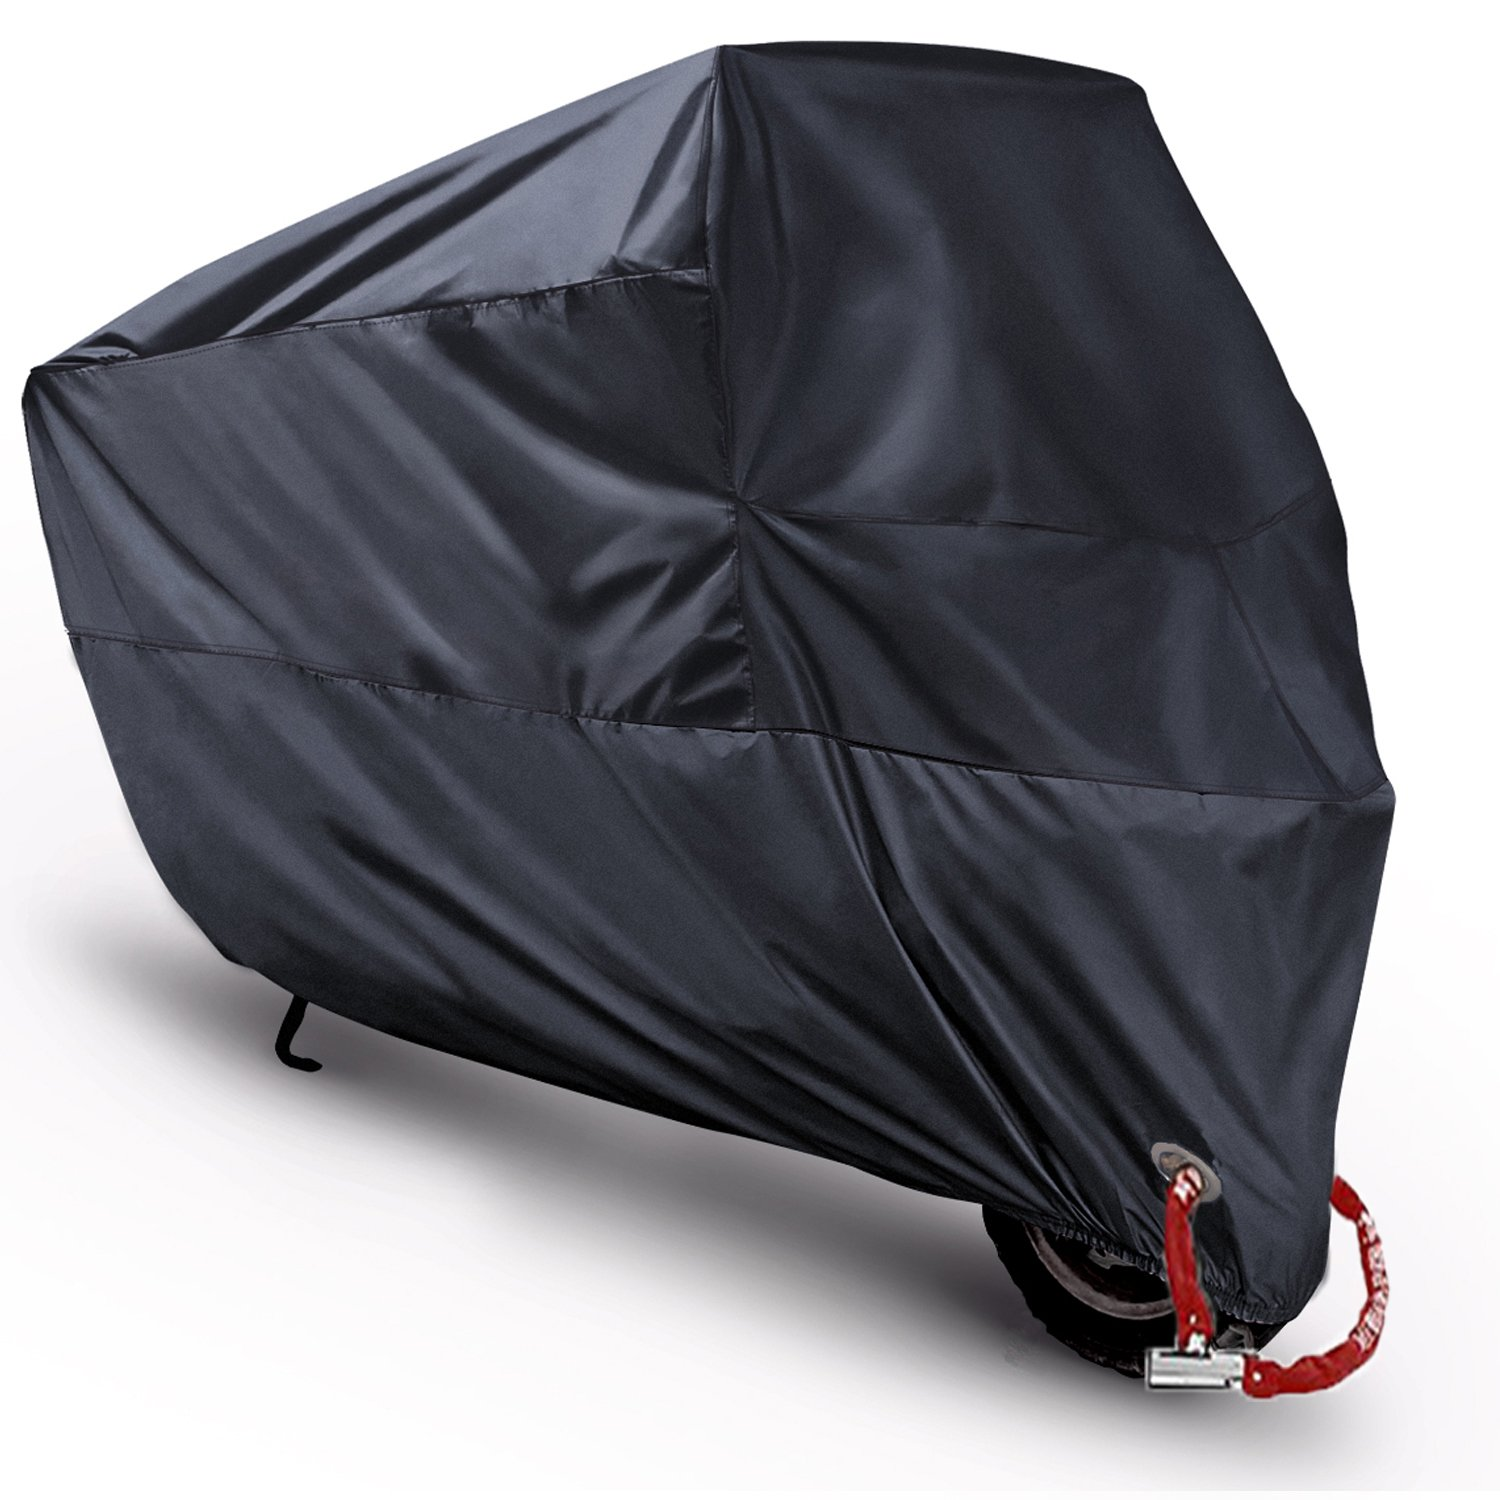 Scooter Cover, Moped Cover Motorcycle Cover Waterproof, Motorbike Rain Sun UV Dustproof All Season All Weather Outdoor Protective Cover & Copper Lock Holes [Never Rust]& Buckle -M 78'x35'x39' MONOJOY 4333030715